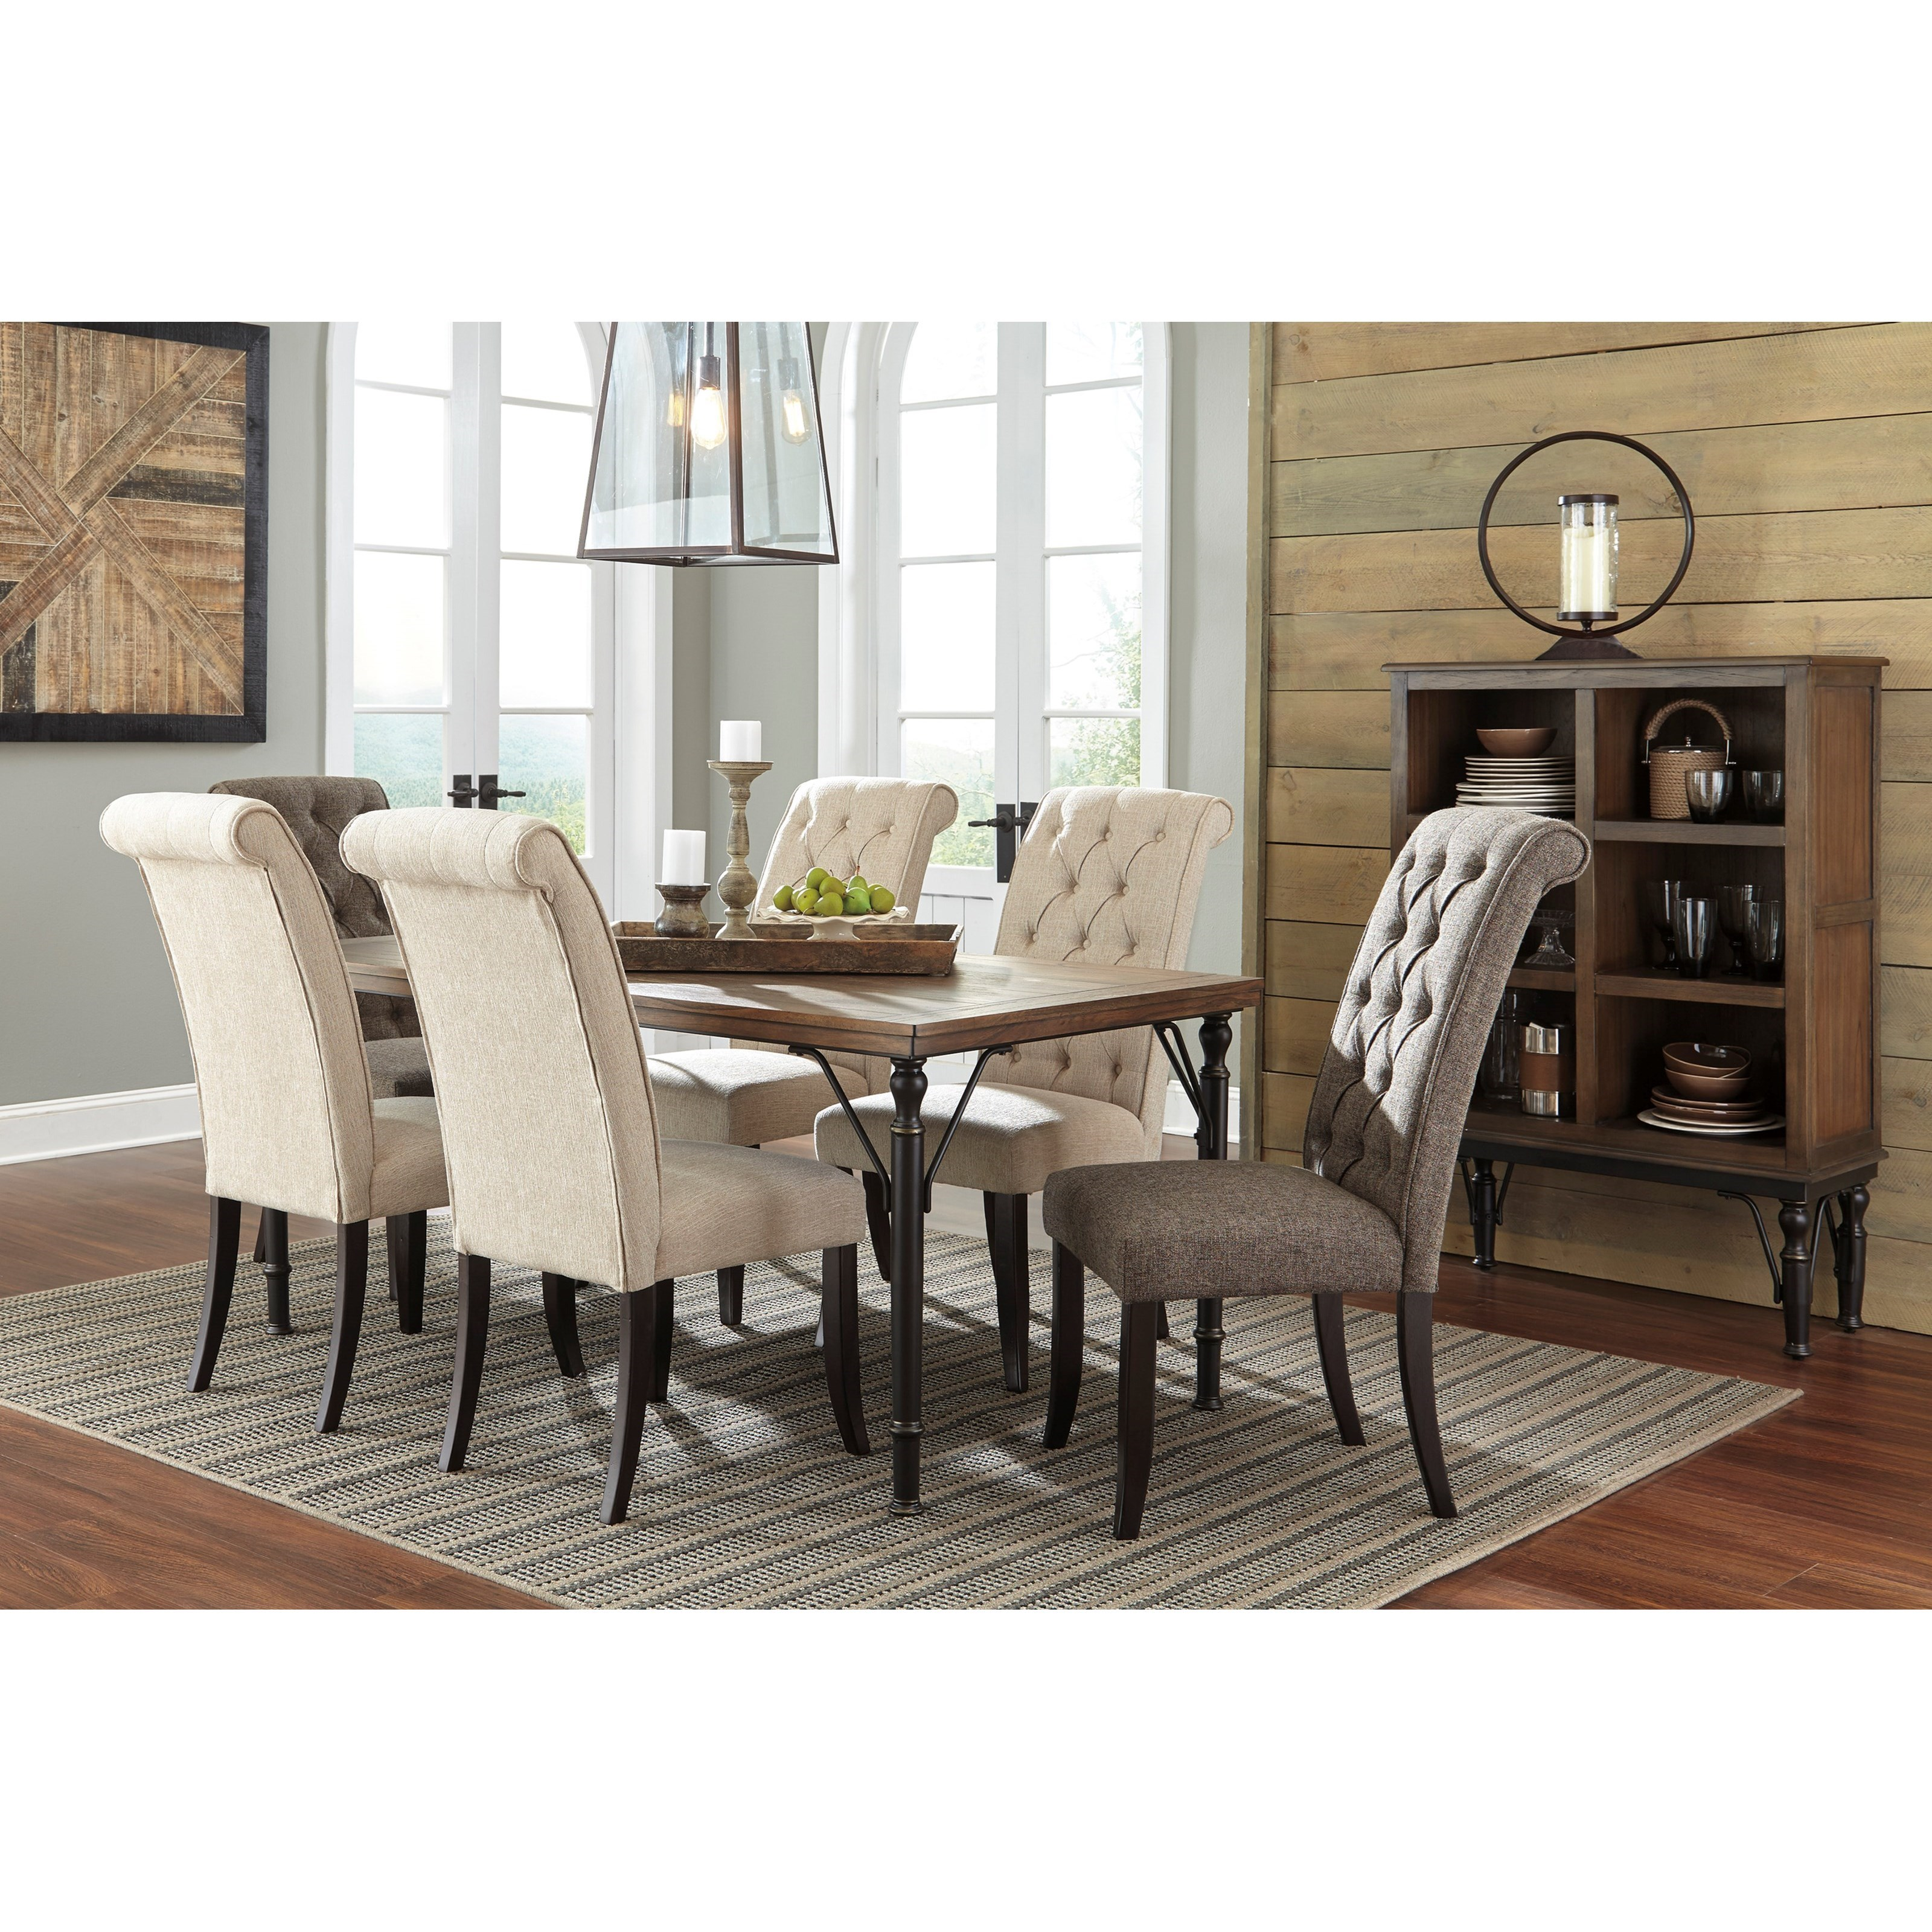 Signature Design by Ashley Tripton Casual Dining Room Group - Item Number: D530 Dining Room Group 4